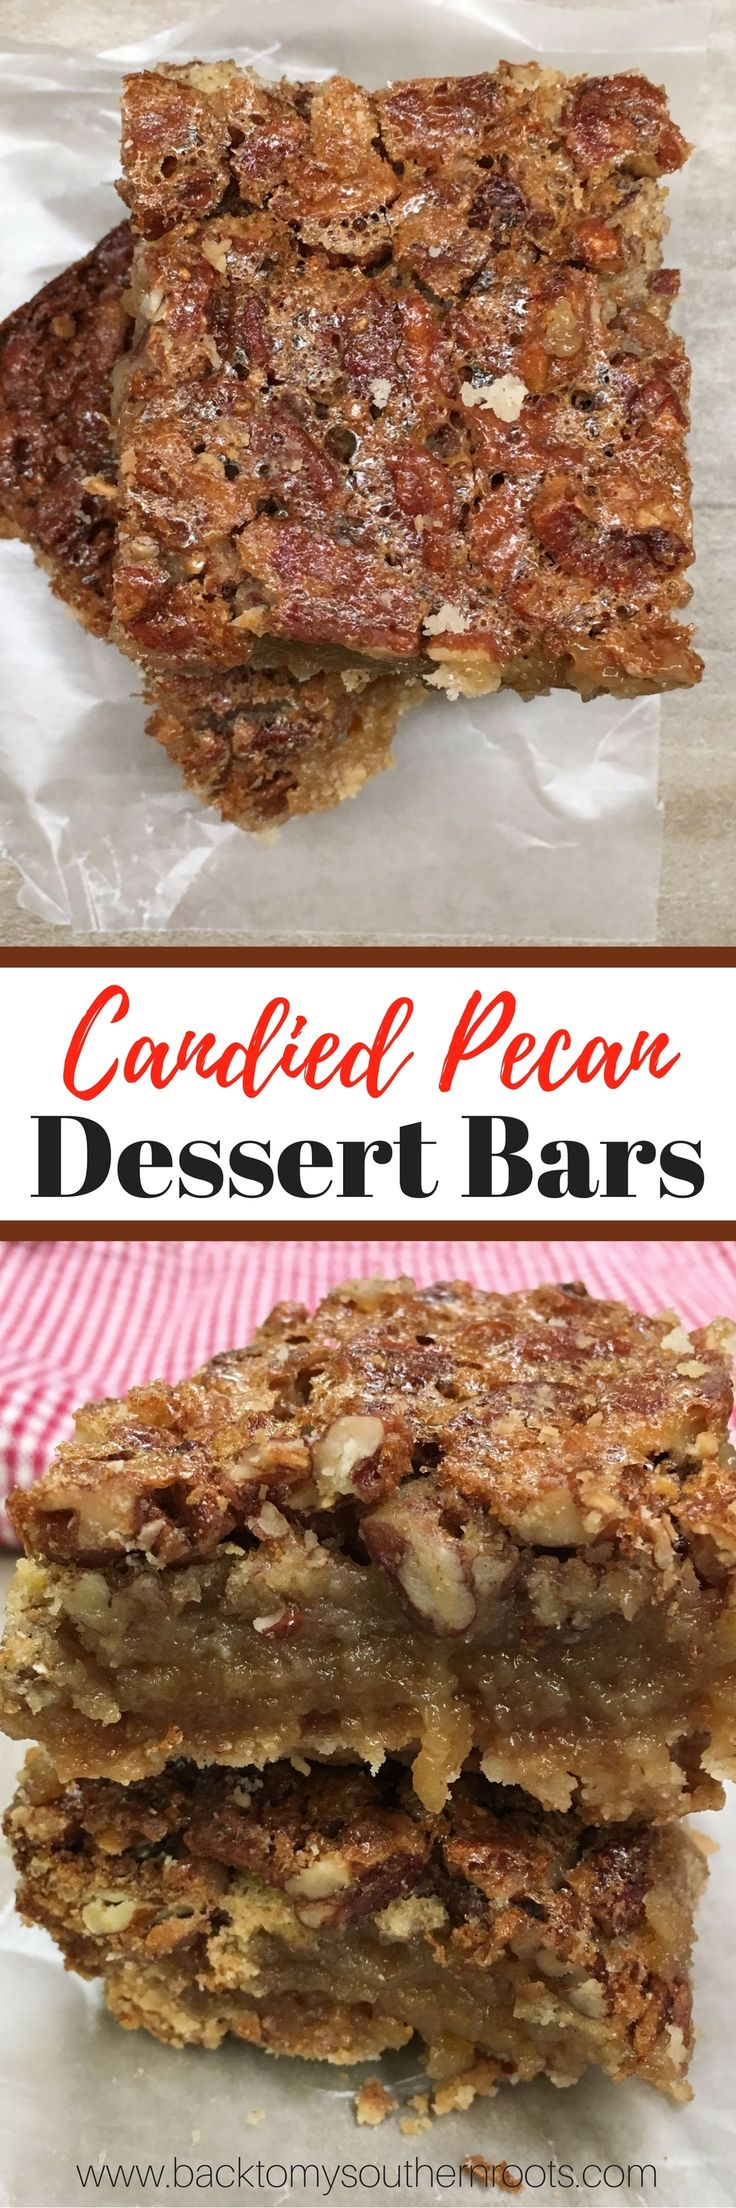 Candied Pecan Dessert Bars are an easy treat to make. The pecan bars are a delicious dessert for any time of the year, but especially the Thanksgiving and Christmas Holidays. via @juliepollittbacktomysouthernroots